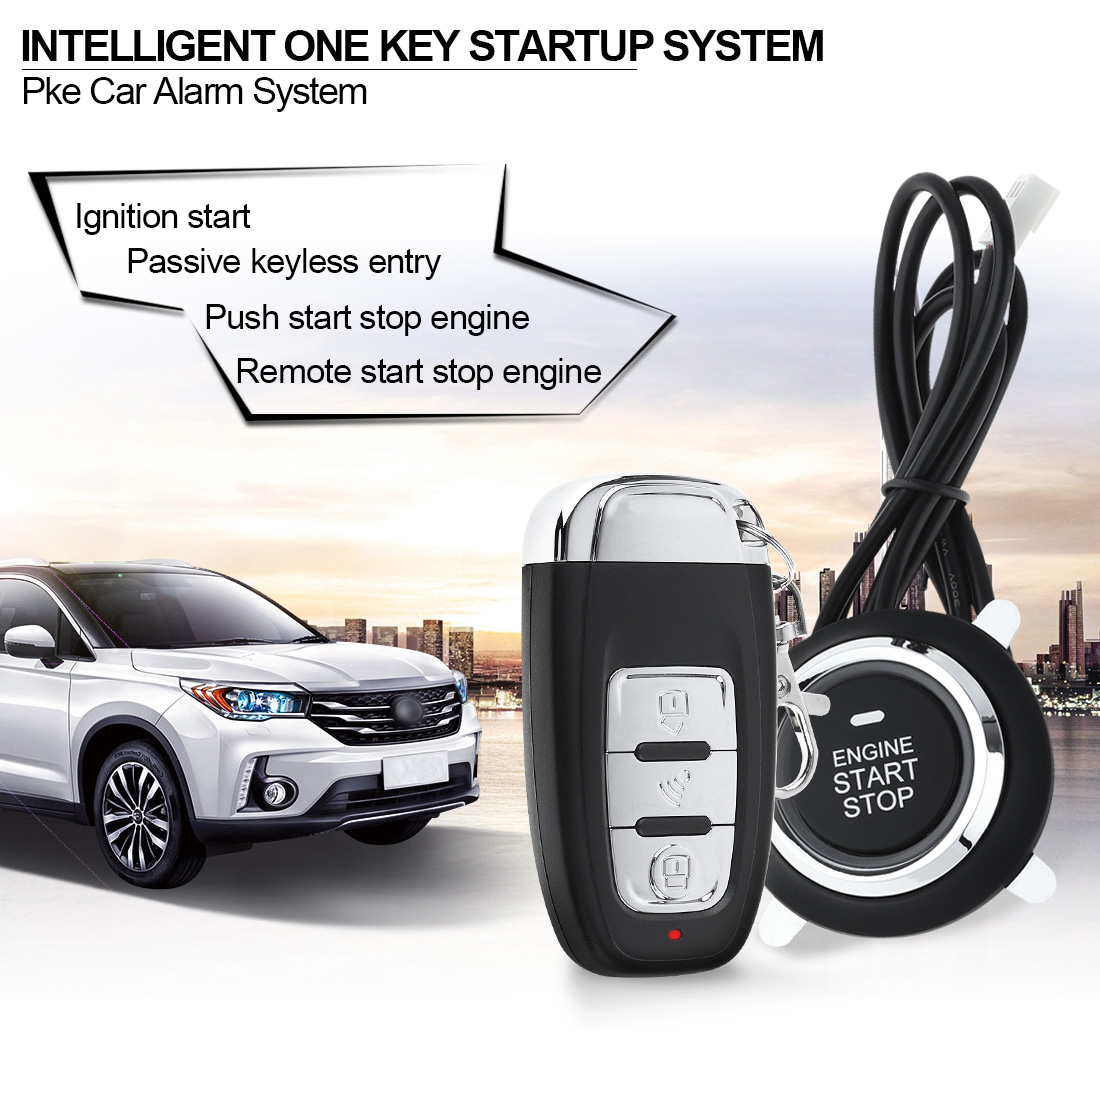 все цены на Remote Initiating System PKE Car Smart Alarm Start Stop Engine System with Auto Central Lock Keyless Entry and Vibration Alarm